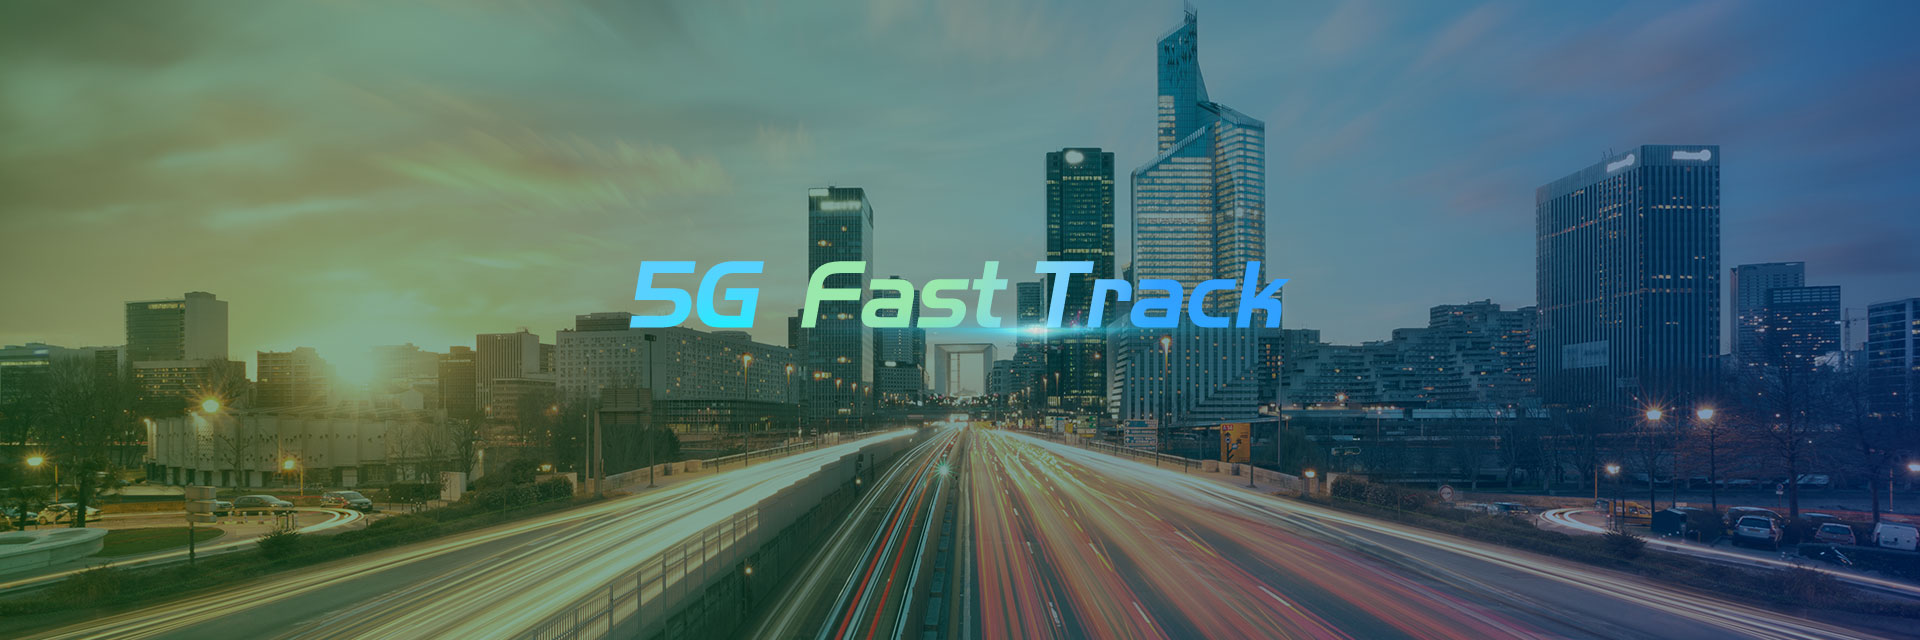 5G Fast Track